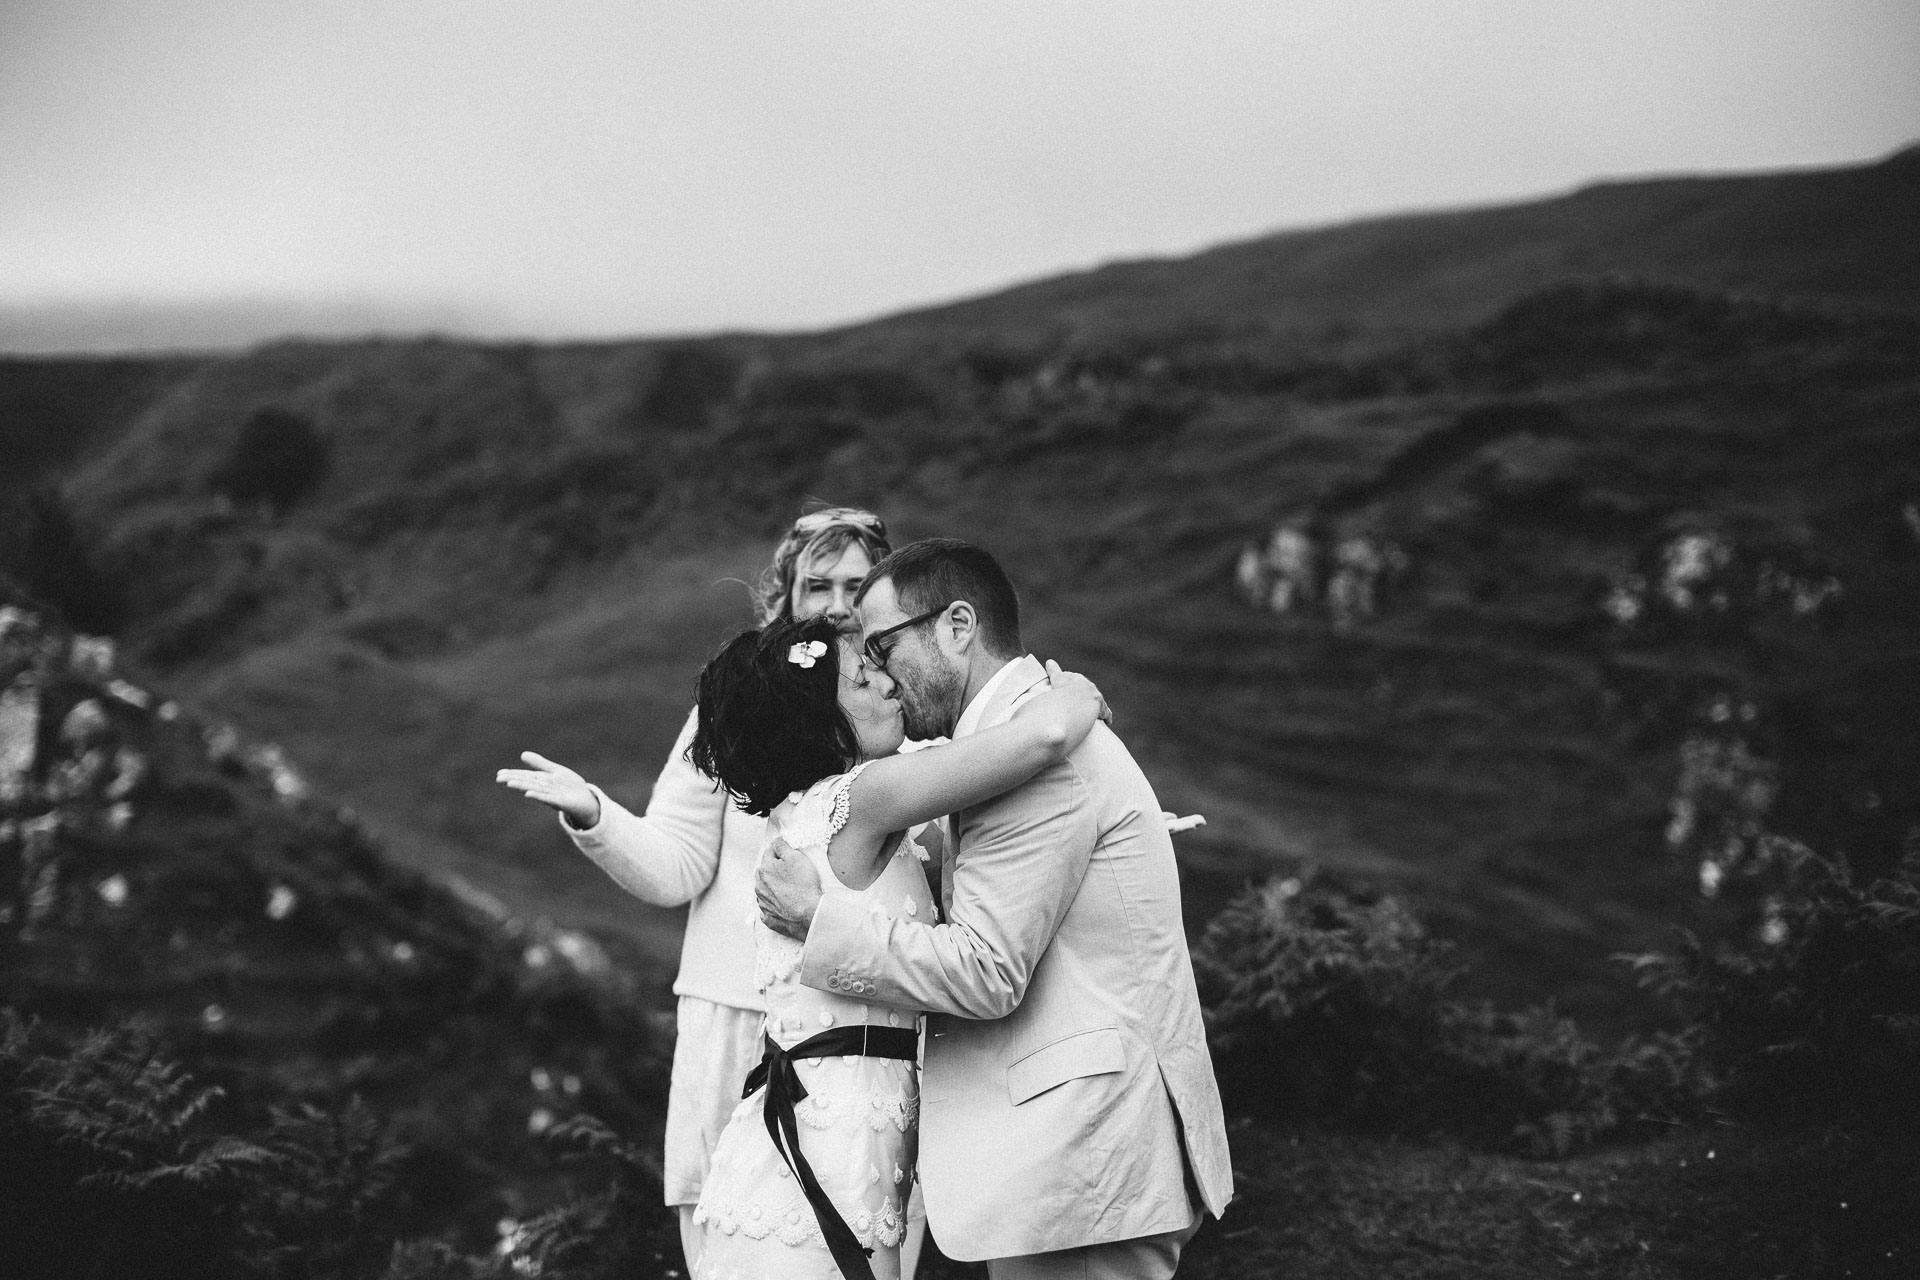 Megan_Matt_Elopement_IntimateWedding_Scotland_IsleOfSkye_JeanLaurentGaudy_091